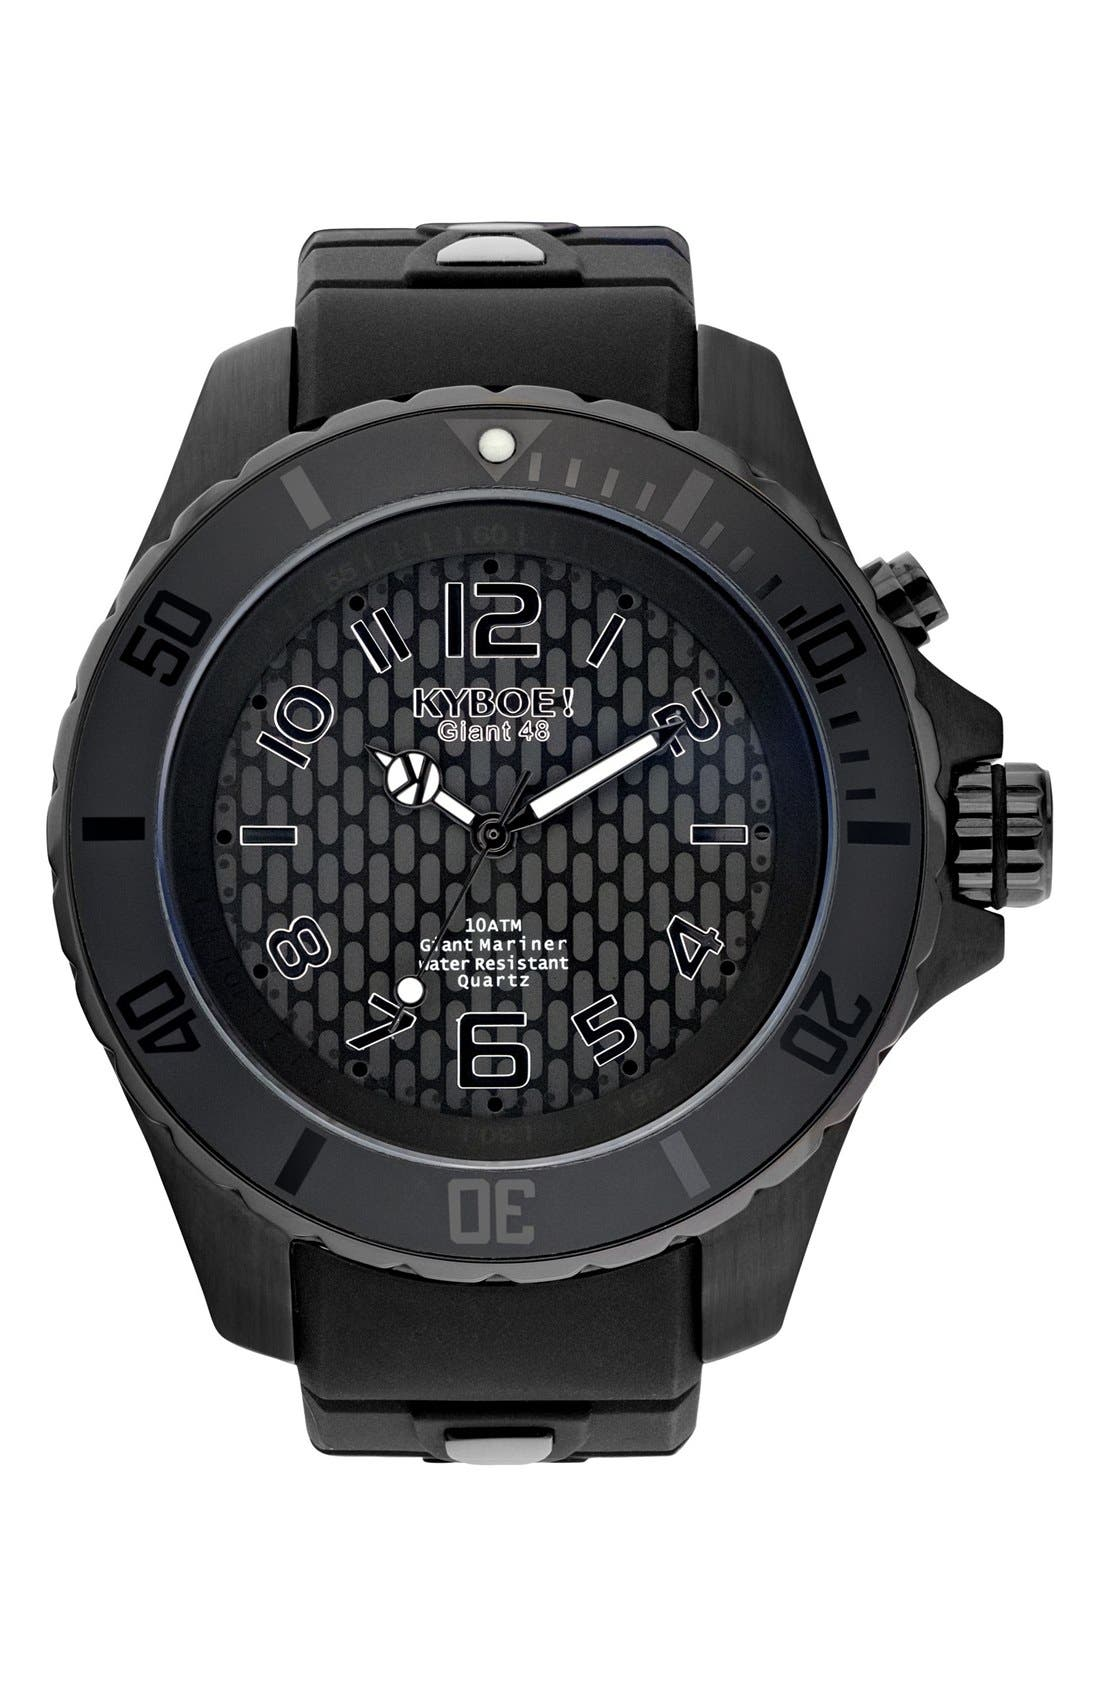 Main Image - KYBOE! Power Silicone Strap Watch, 48mm